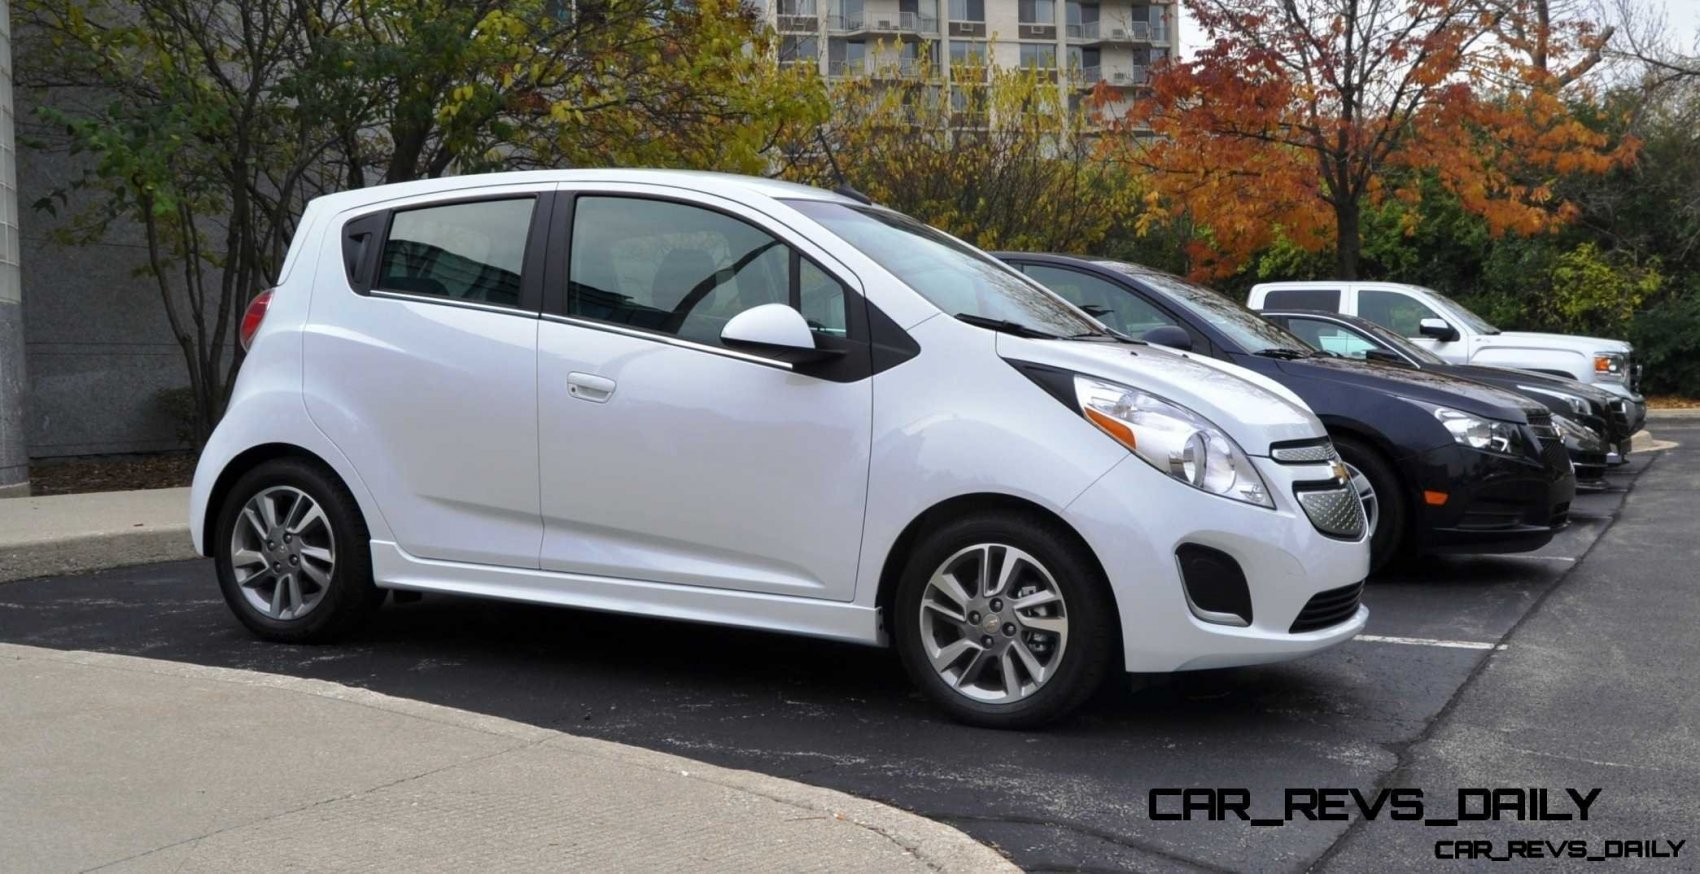 2014 Chevrolet Spark EV First Glimpse Photos Inside and Out Looks Cute